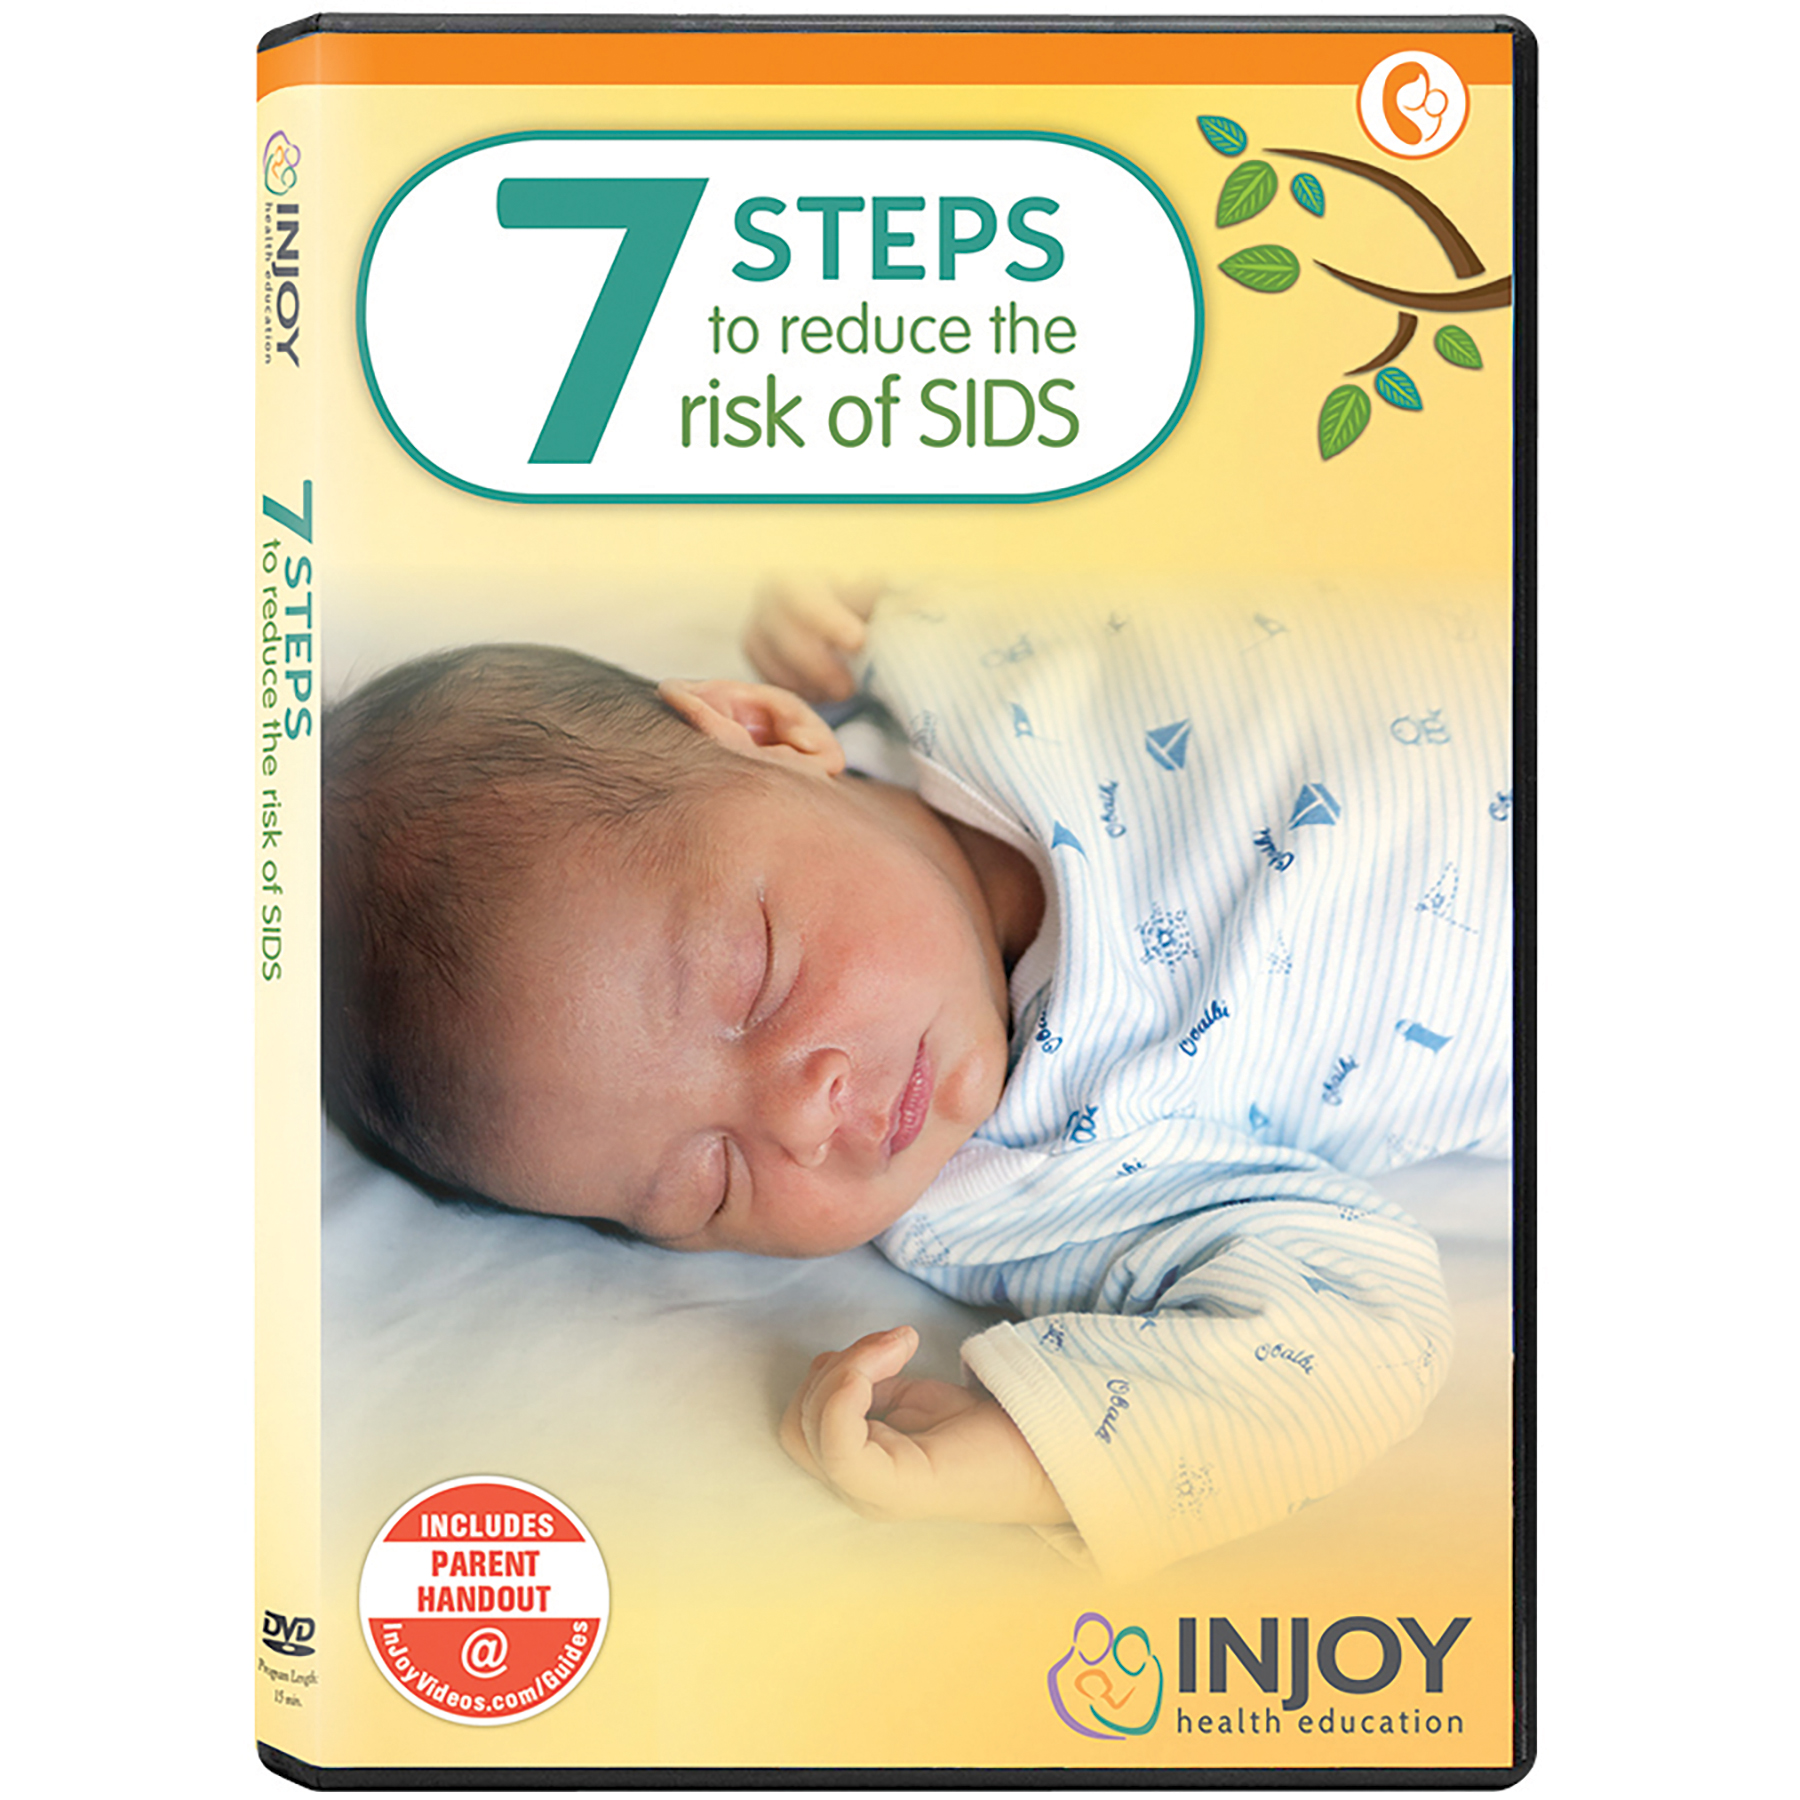 Steps to Reduce the Risk of SIDS Sudden Infant Death Syndrome DVD cover closeup of baby sleeping, Childbirth Graphics, 44032